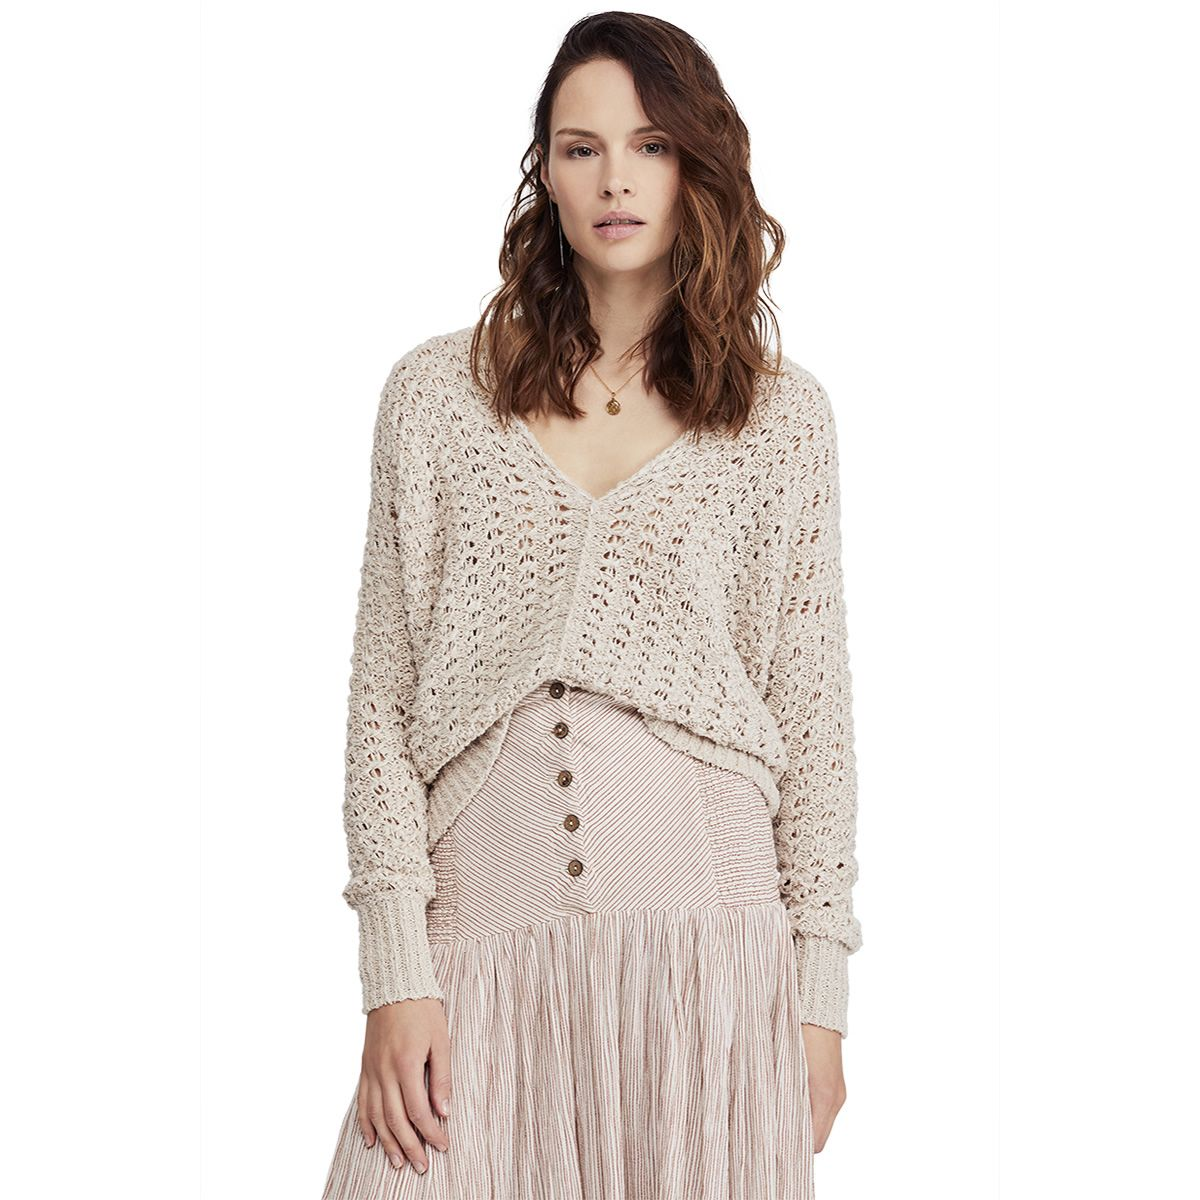 6cd554b67 Free People Clothing - Womens Apparel - Macy s